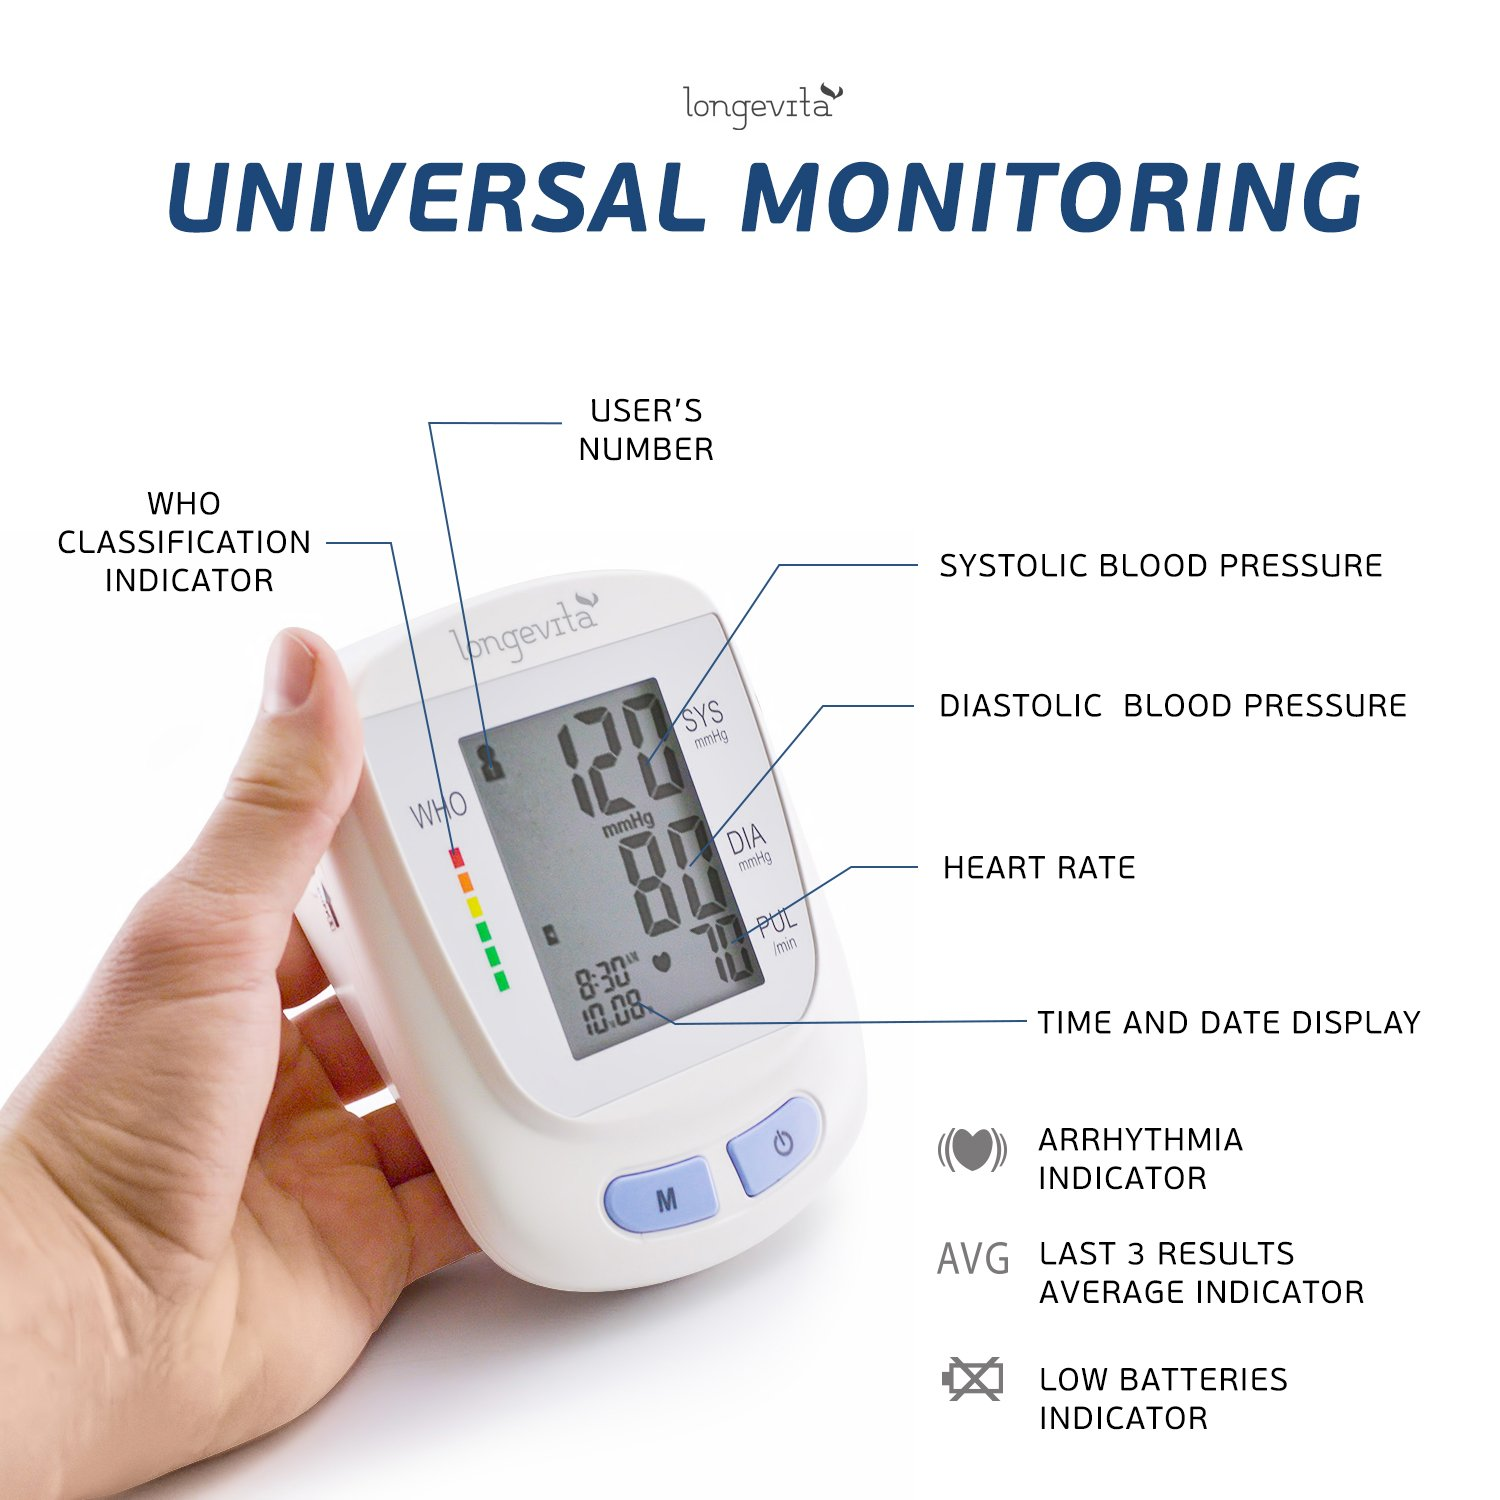 Amazon.com: Automatic Portable Digital Upper Arm Blood Pressure Monitor with Pressure Cuff - Longevita BP-103: Health & Personal Care